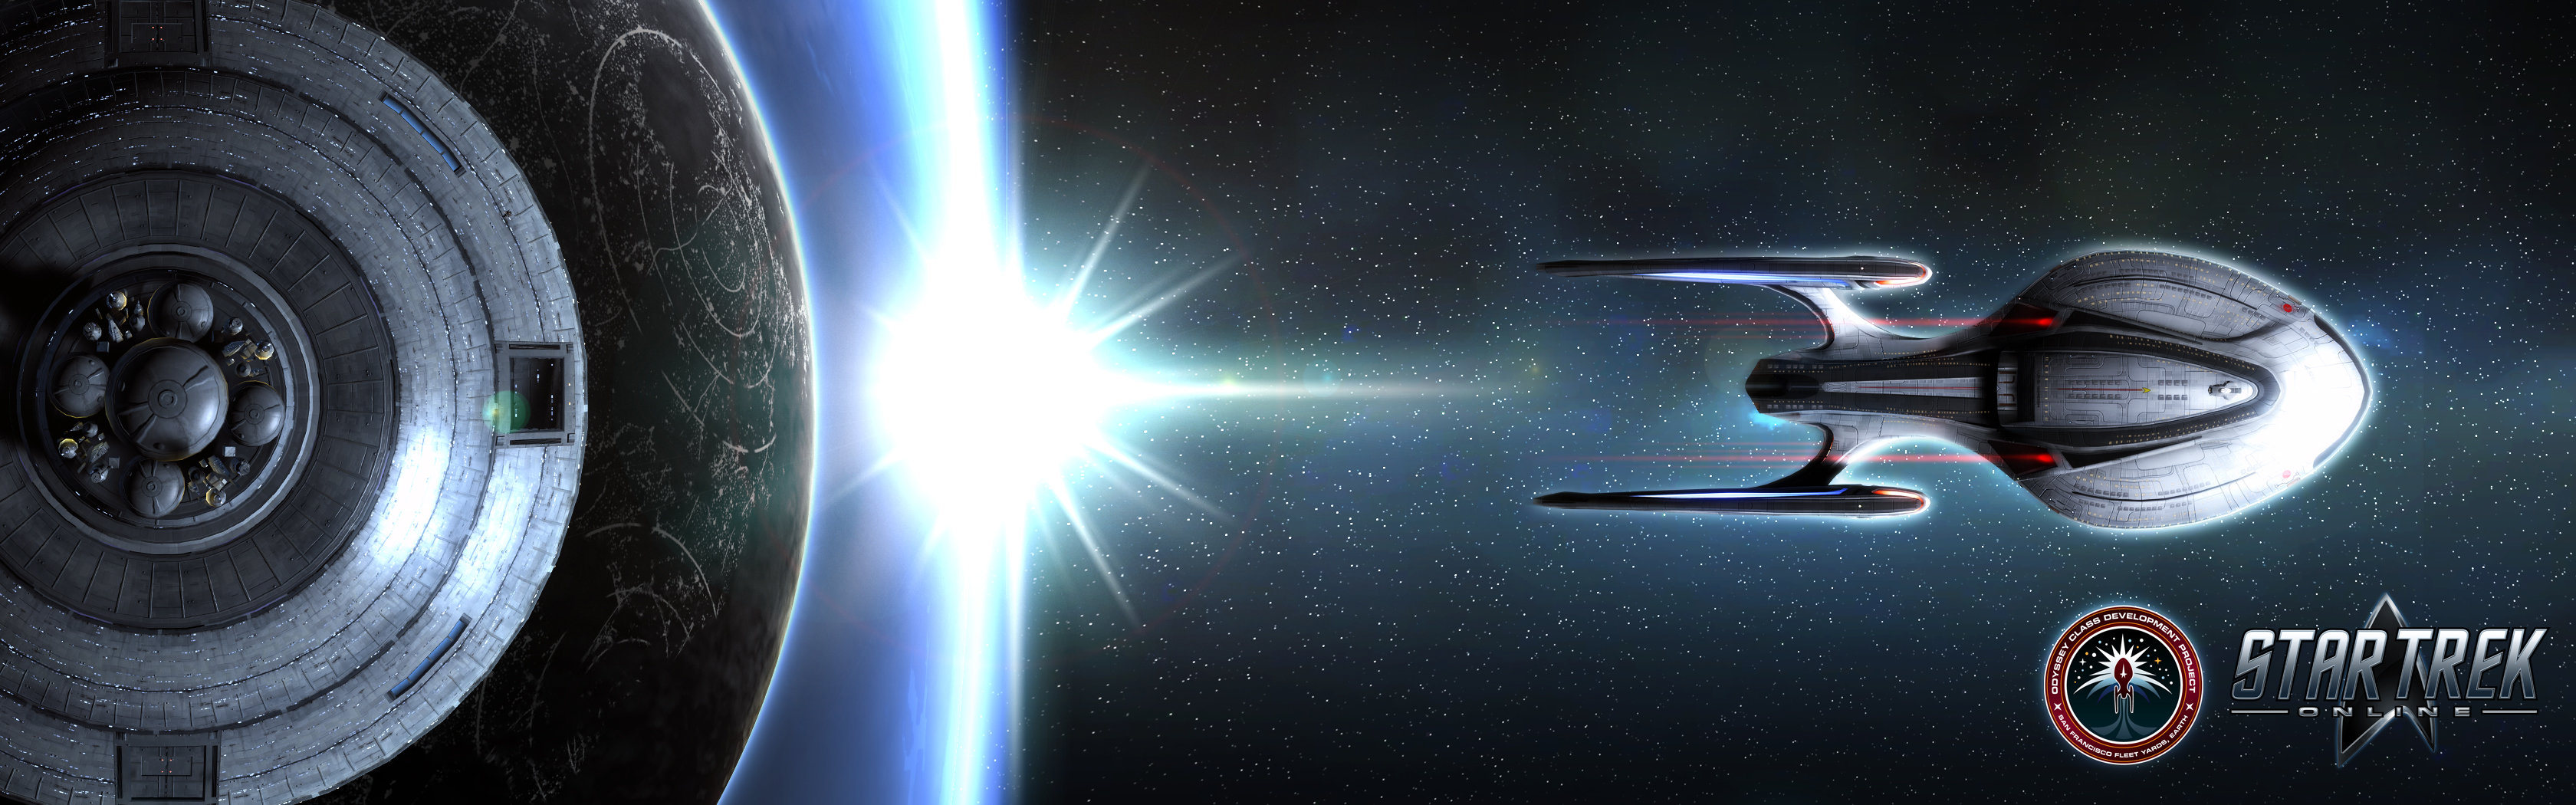 High resolution Star Trek Video Game dual screen 3360x1050 background ID:276314 for computer